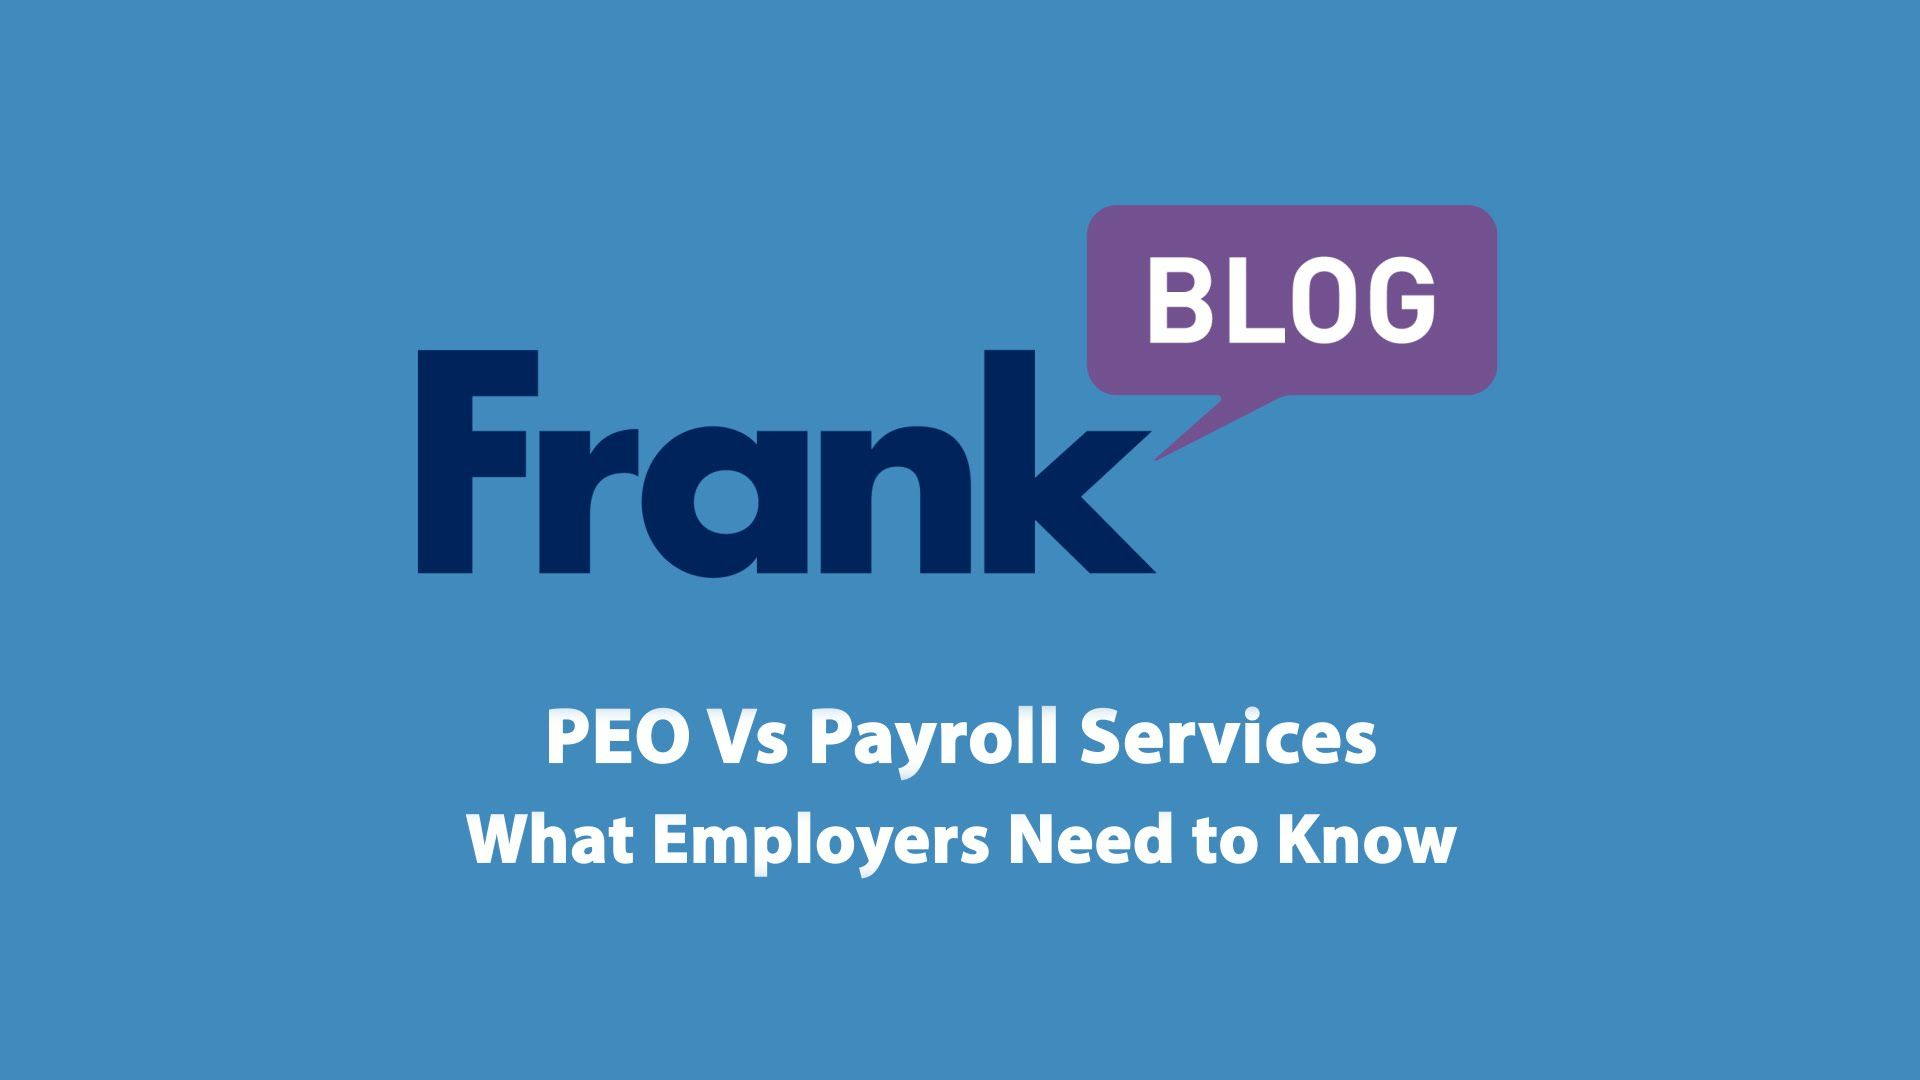 FrankBlog PEO vs. Payroll Services What Employers Need